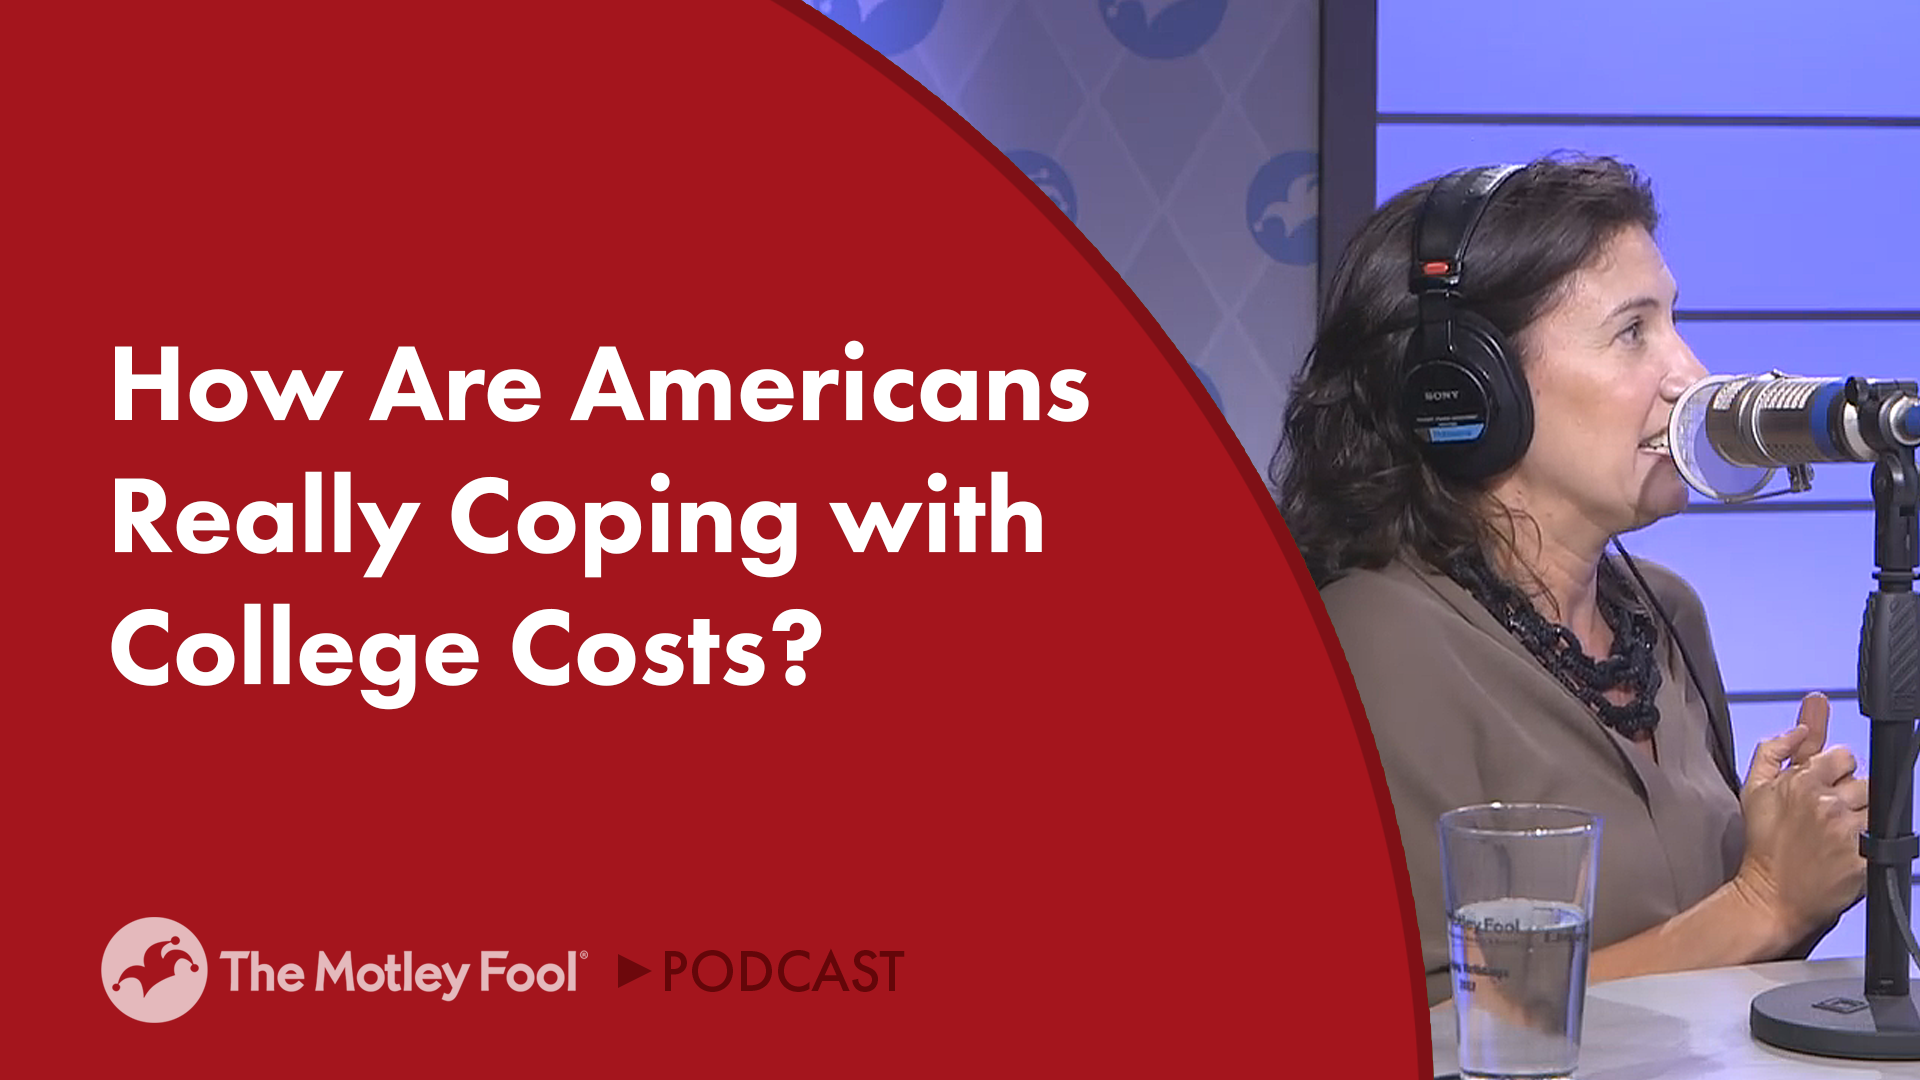 How Are Americans Really Coping With College Costs?